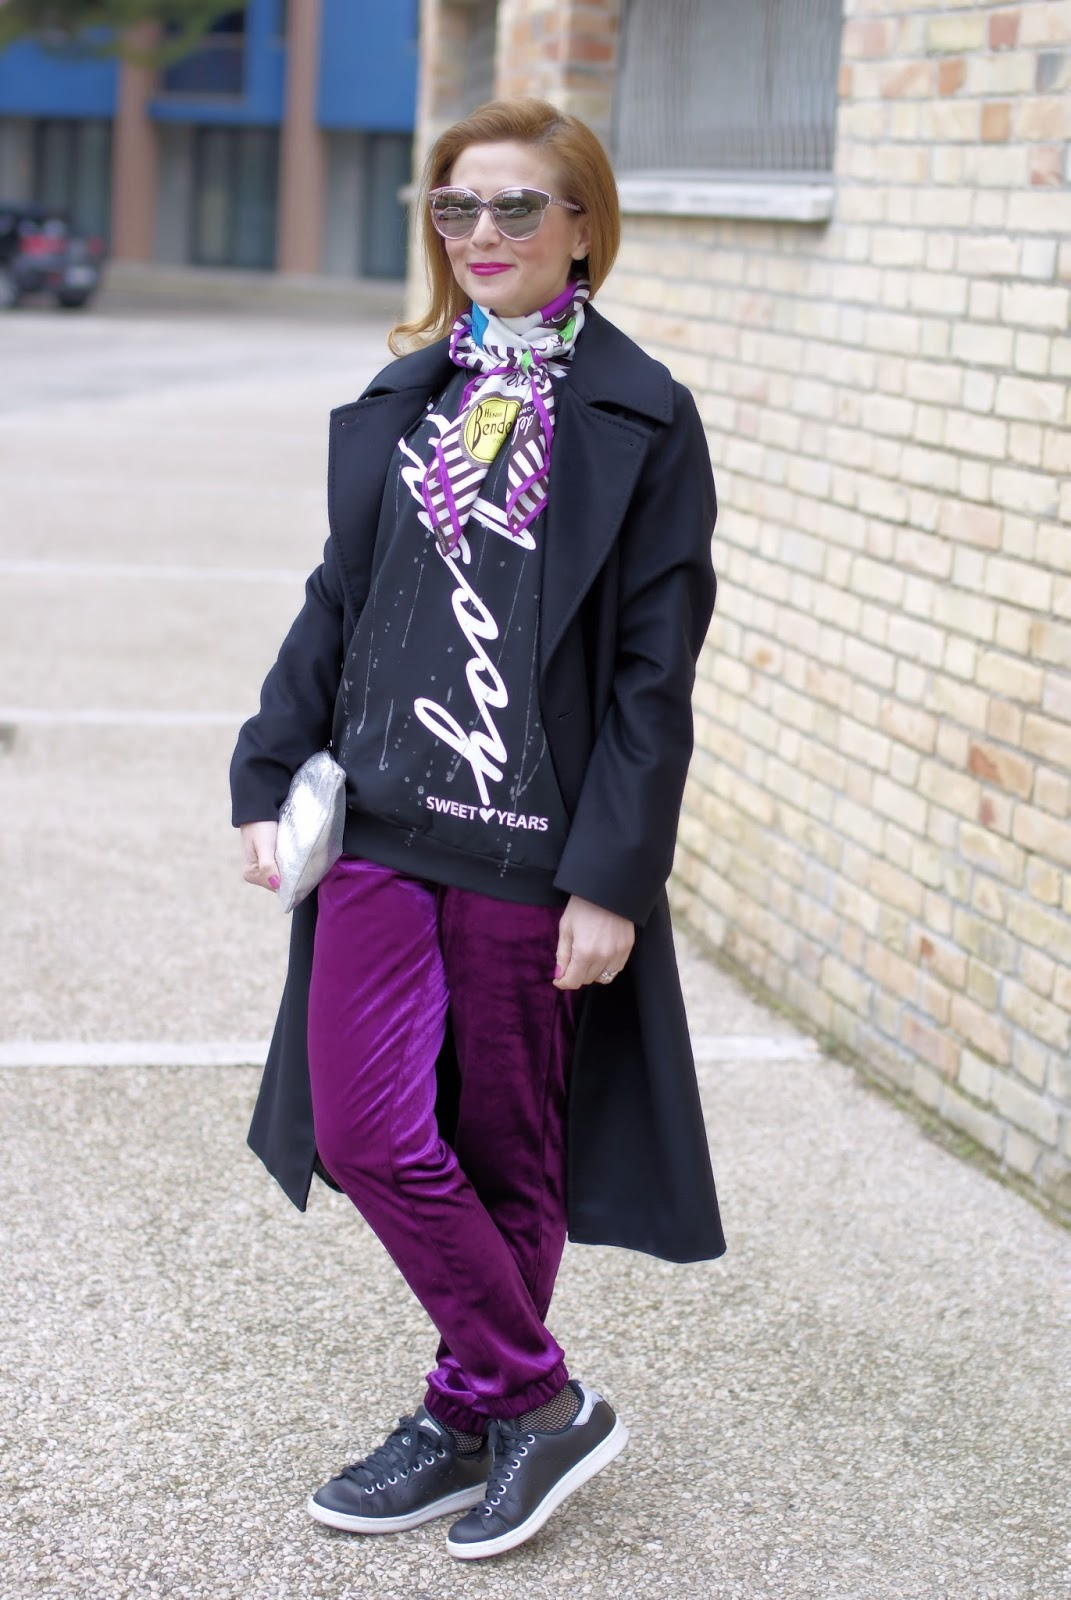 Sweet Years sweatshirt, Max Mara Zic coat on Fashion and Cookies fashion blog, fashion blogger style